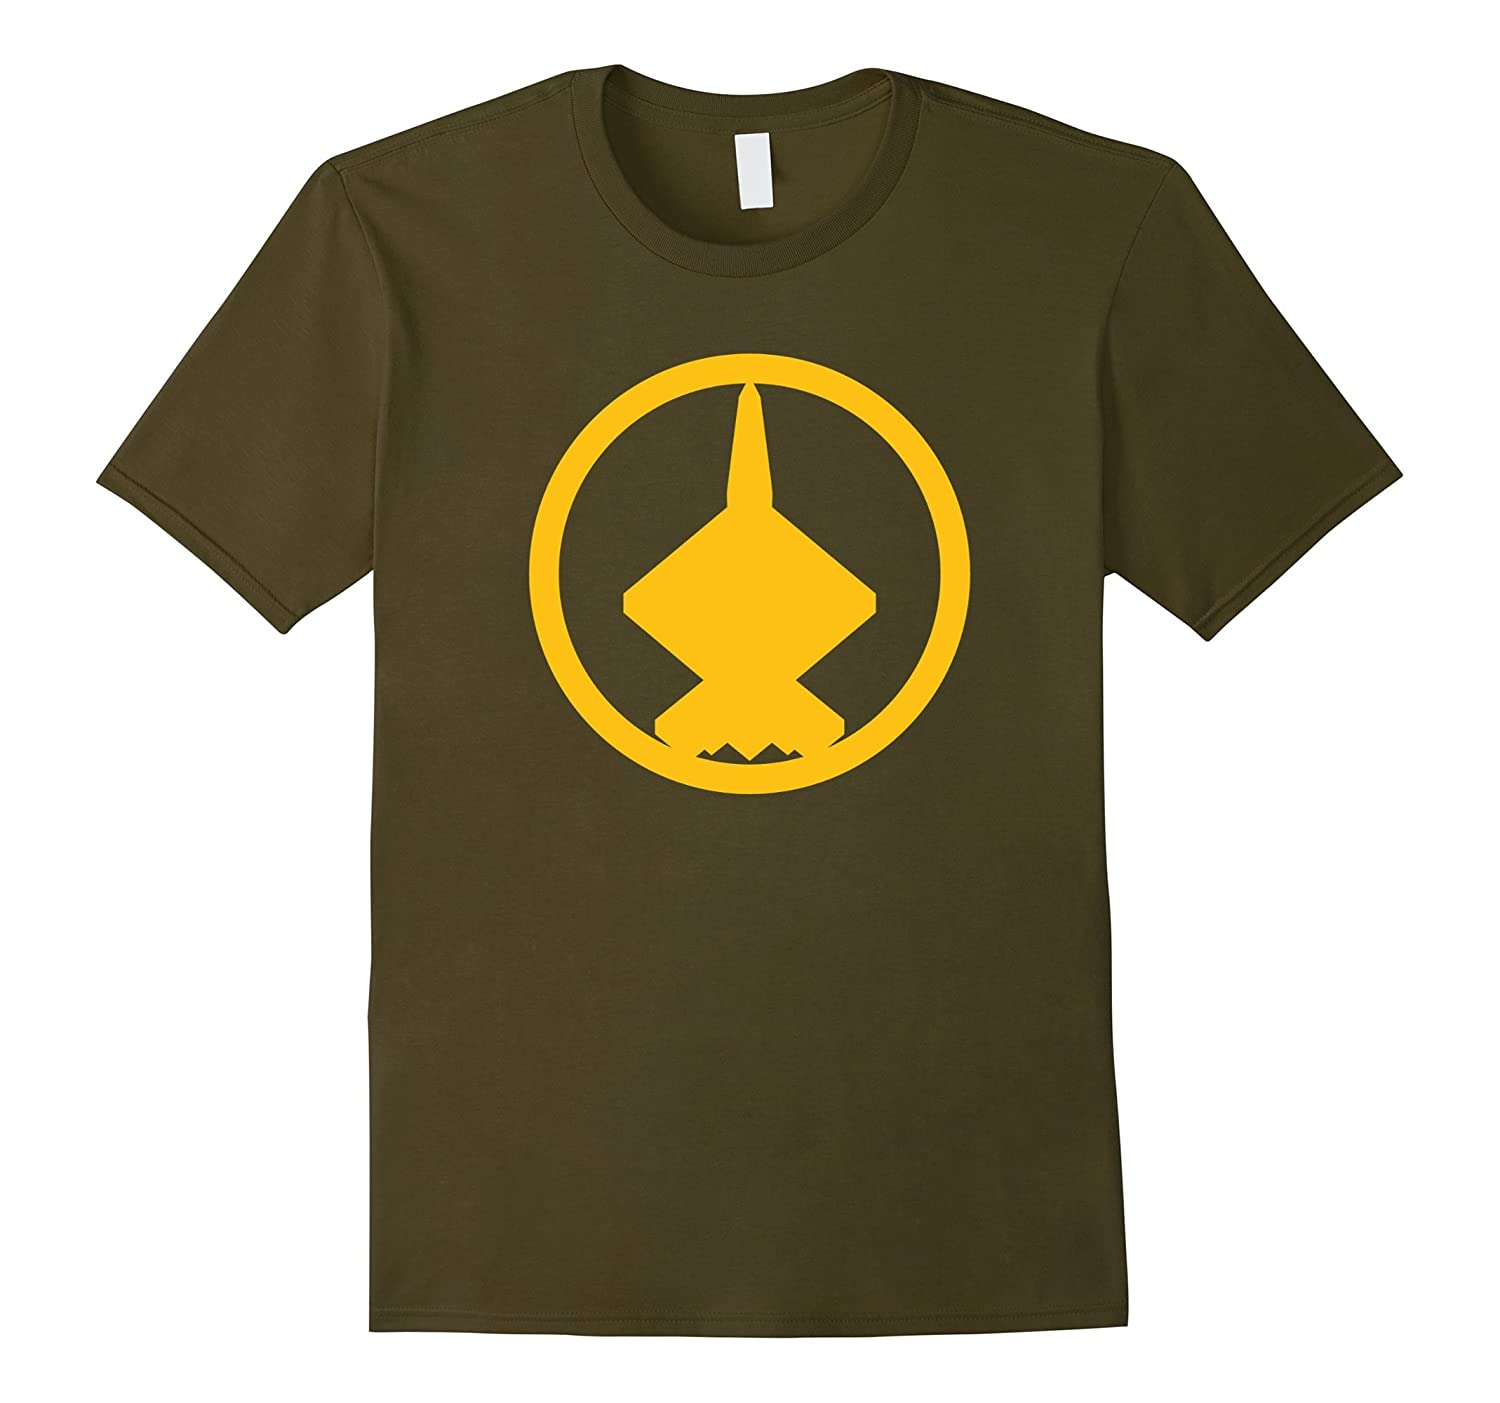 YF-23 (Yellow) Air Force Military Fighter Jet T-Shirt-T-Shirt